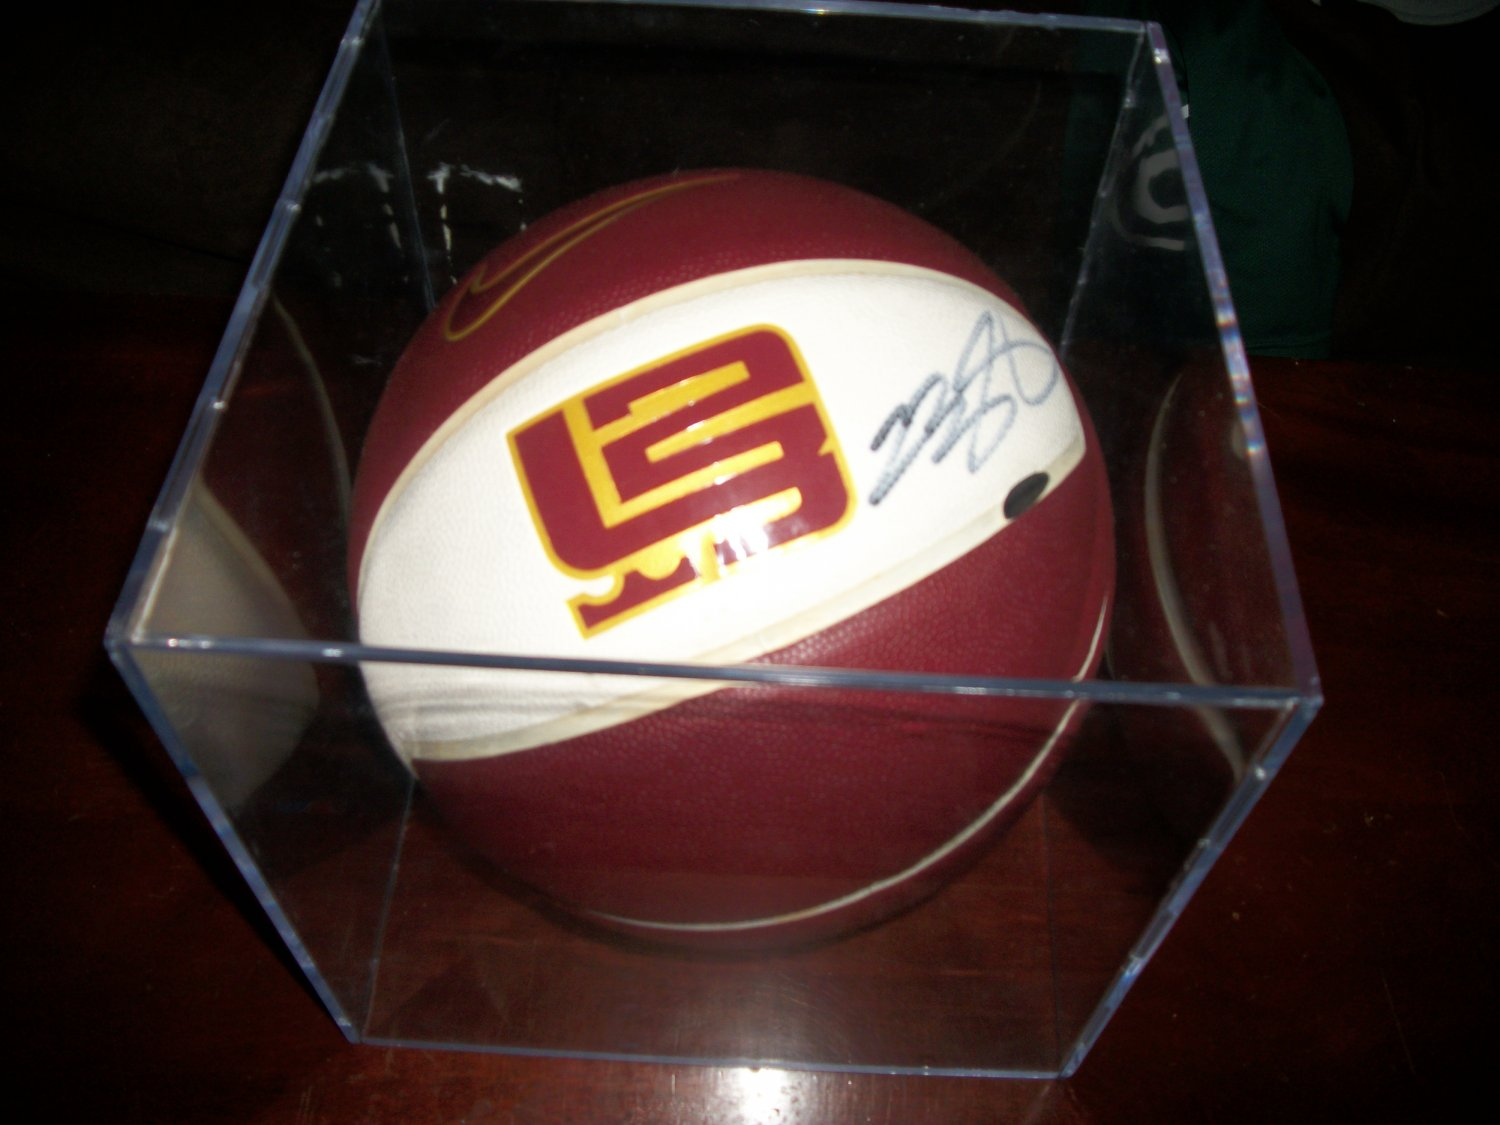 lebron james autograph - photo #48